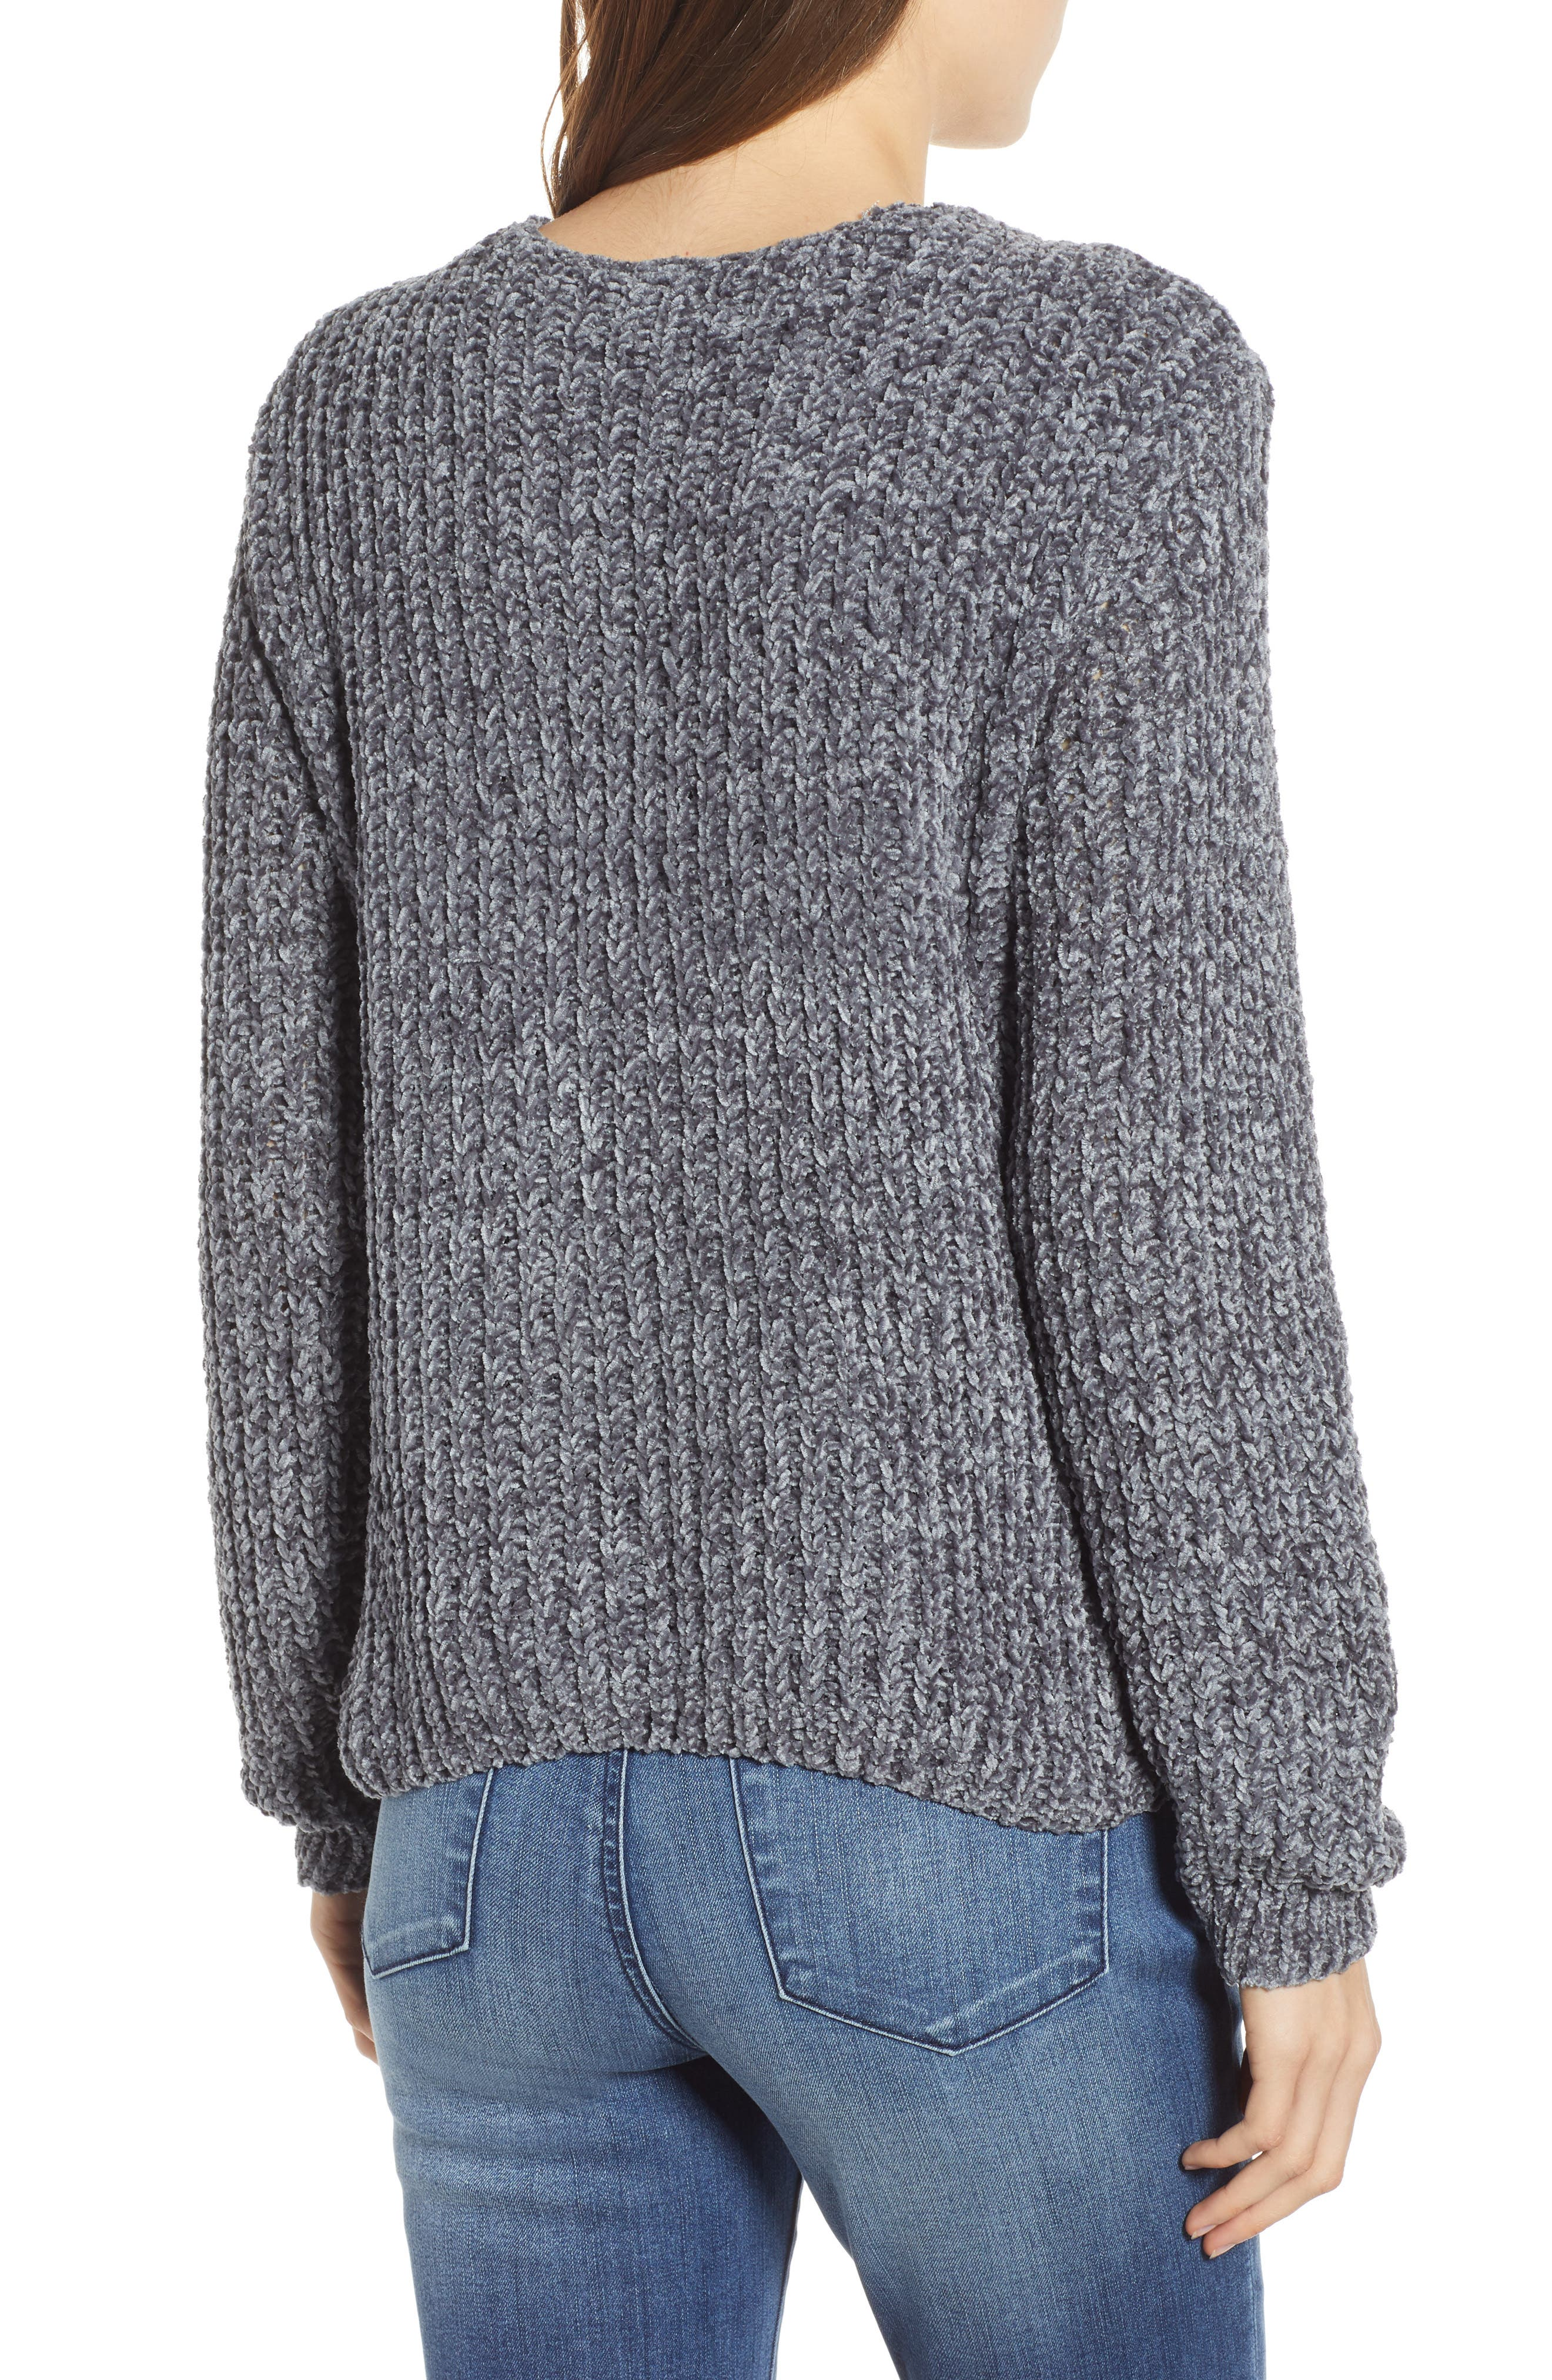 Padang Paradise Chenille Sweater,                             Alternate thumbnail 2, color,                             020